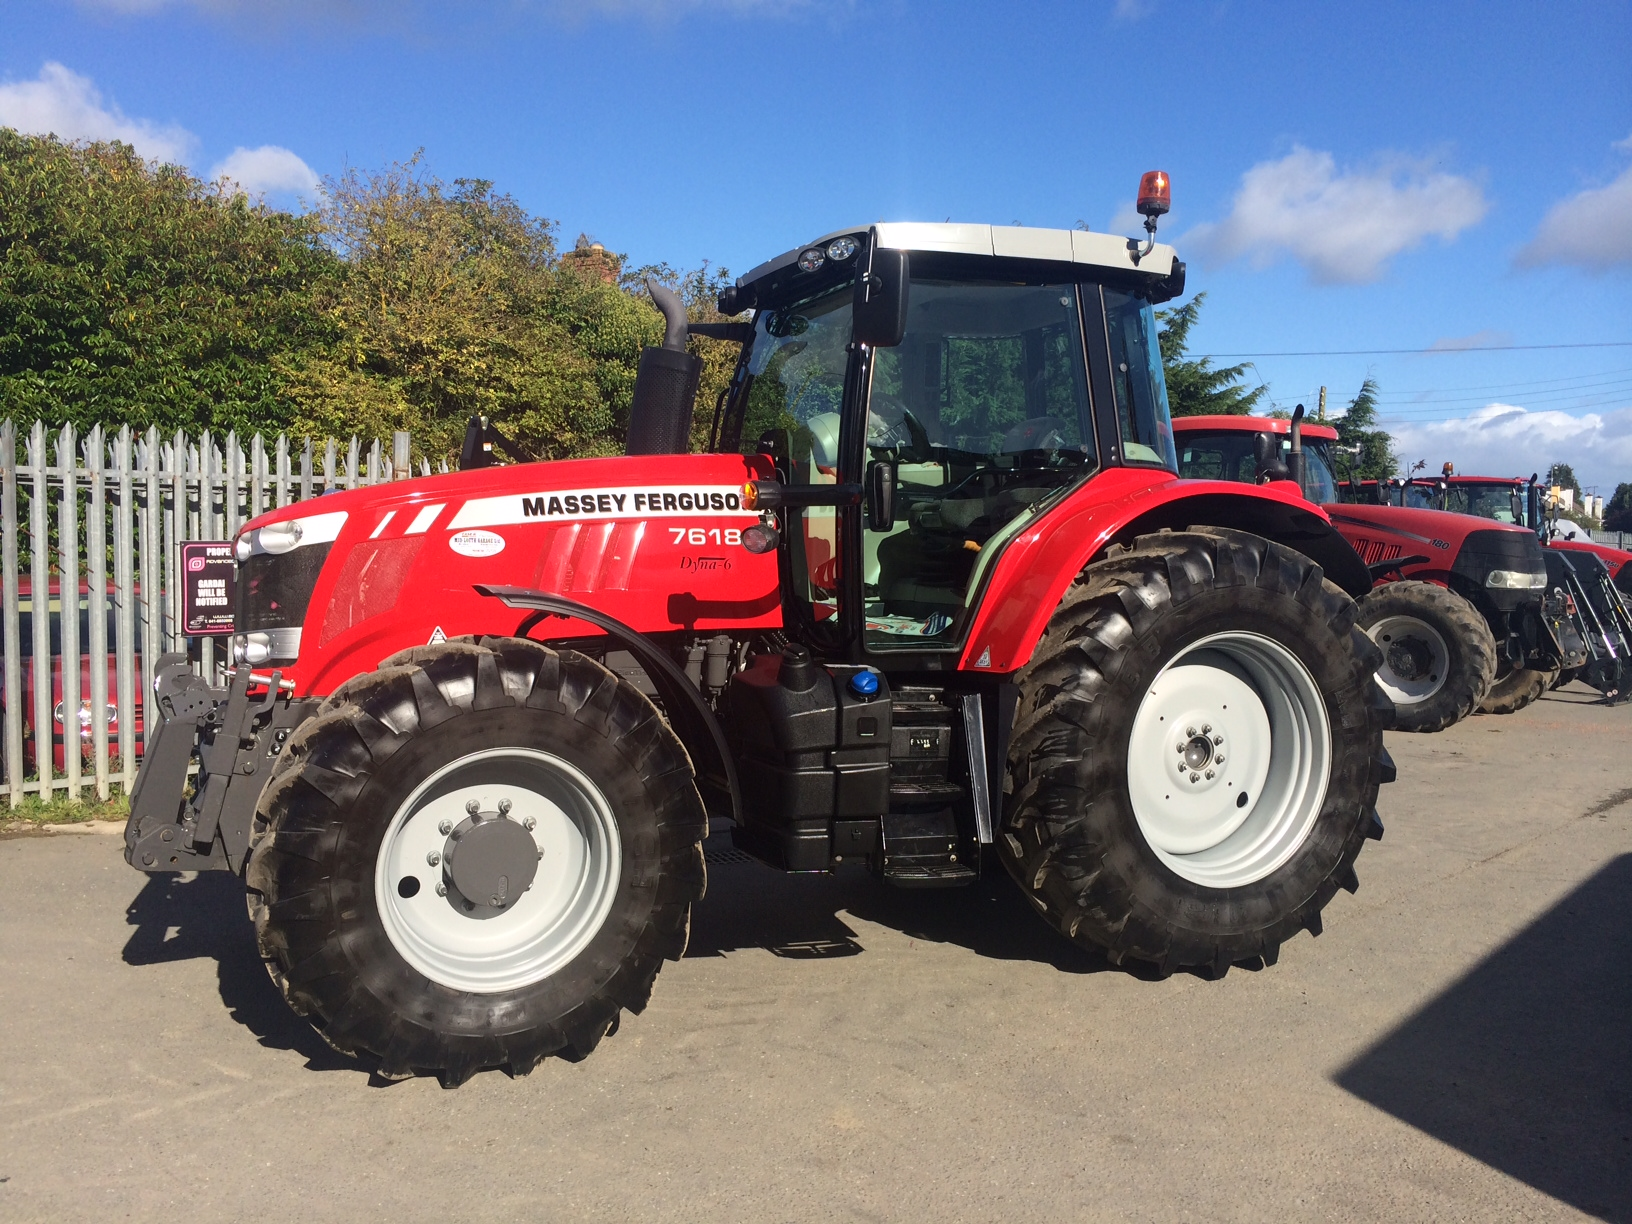 Home u00bb New Machinery u00bb New Machinery Ex Stock u00bb MASSEY FERGUSON ...